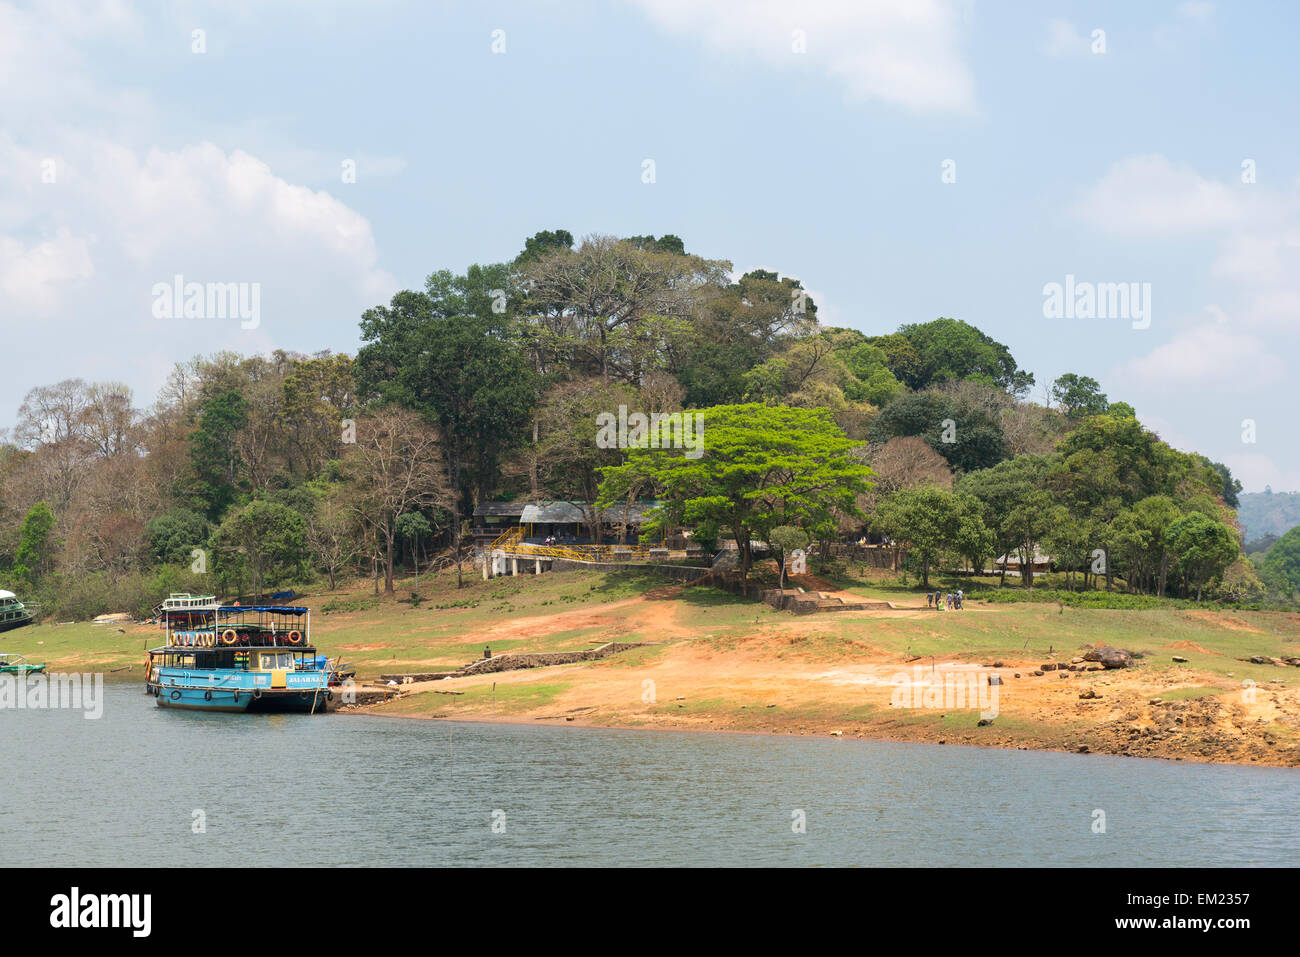 The Periyar Reserve in Thekkady, Kerala India - Stock Image